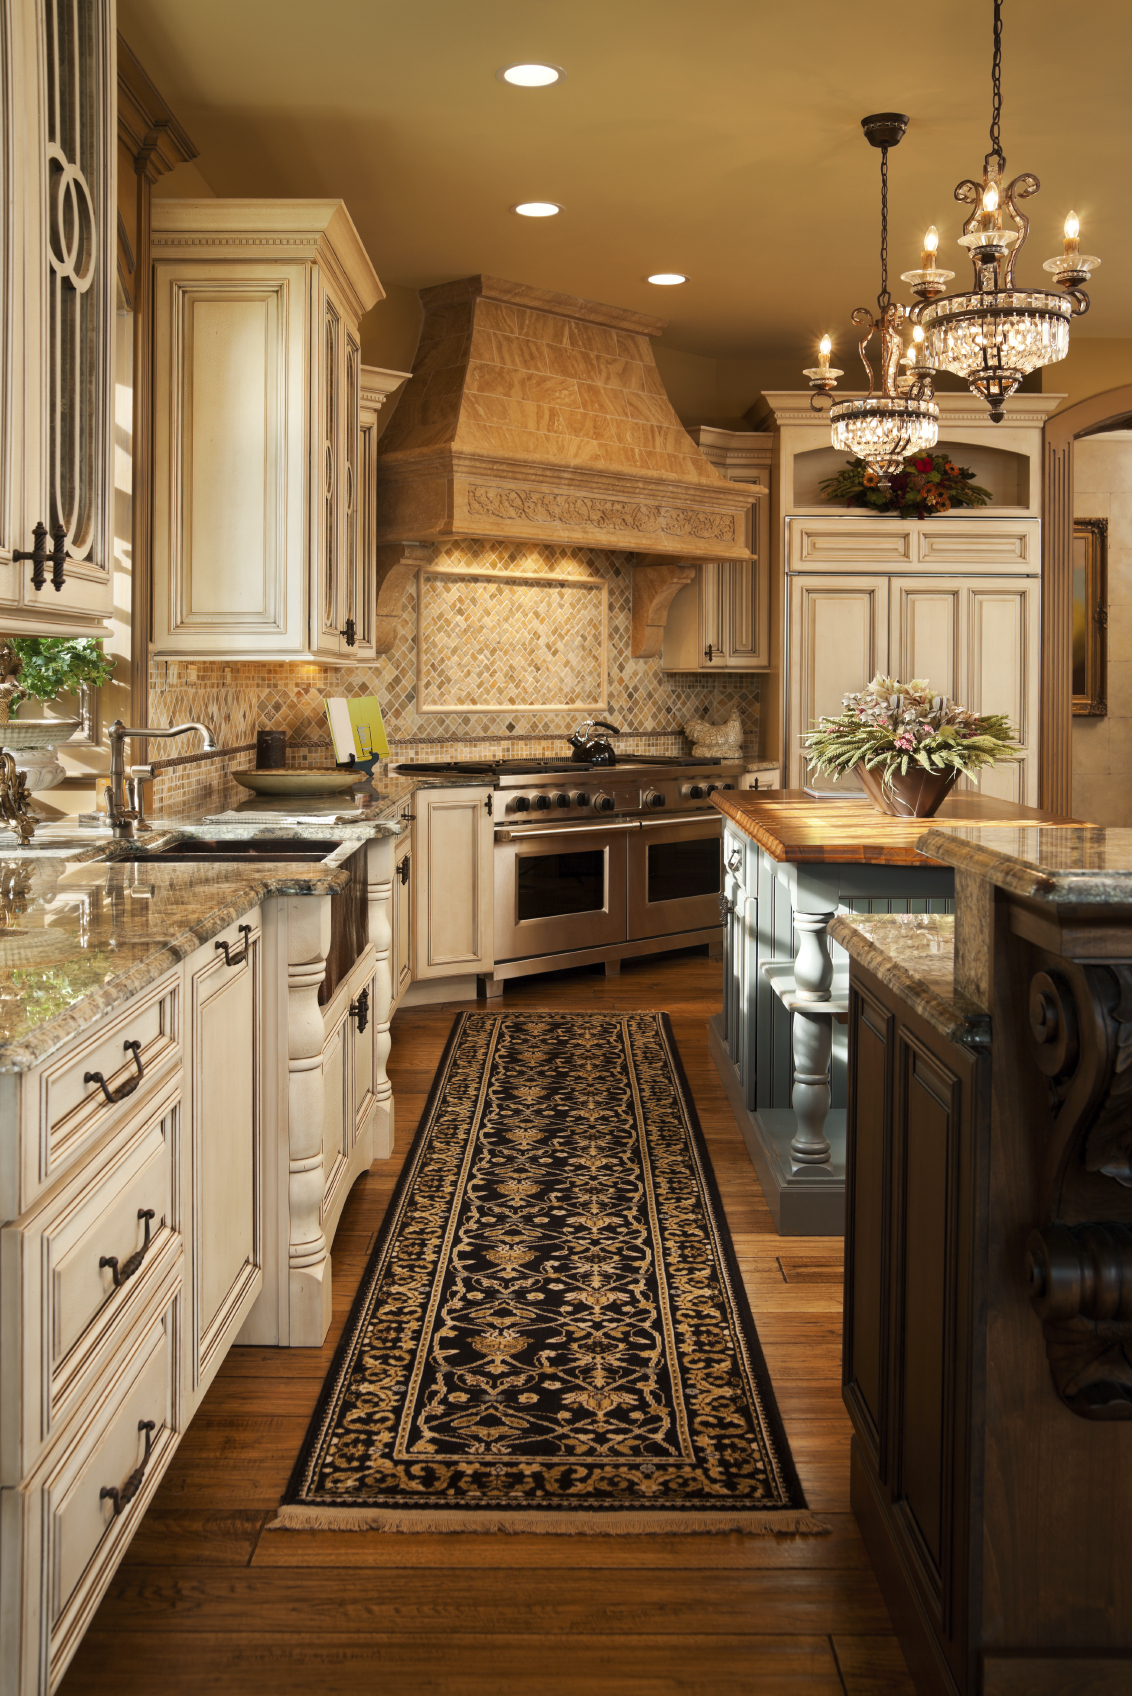 Painting kitchen countertops to look like granite - Interesting Uber Luxurious Custom Kitchen Designs With Painting Countertops To Look Like Stone